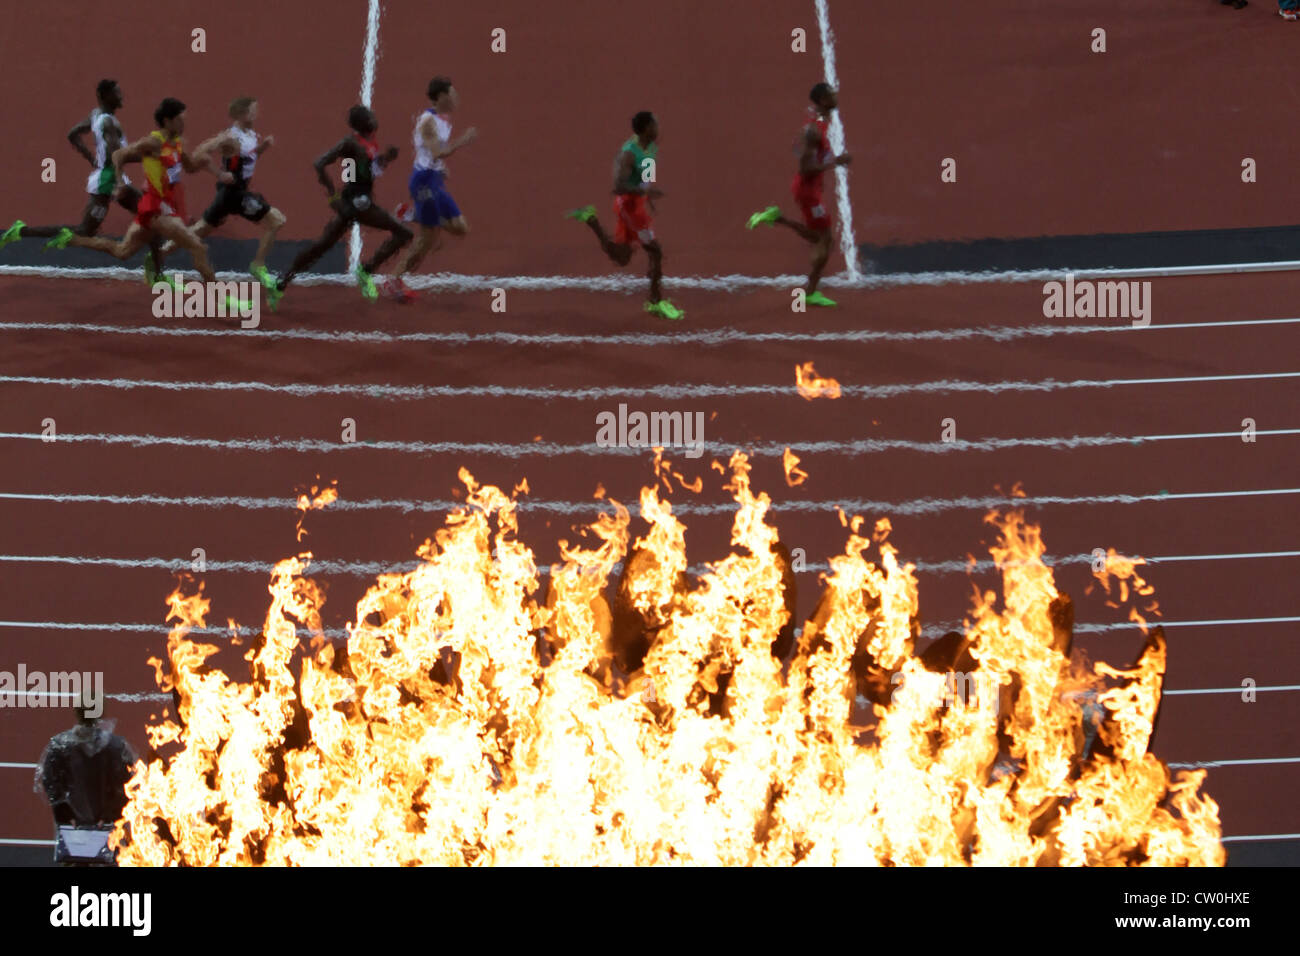 THE OLYMPIC FLAME AT THE STADIUM IN LONDON 2012 - Stock Image